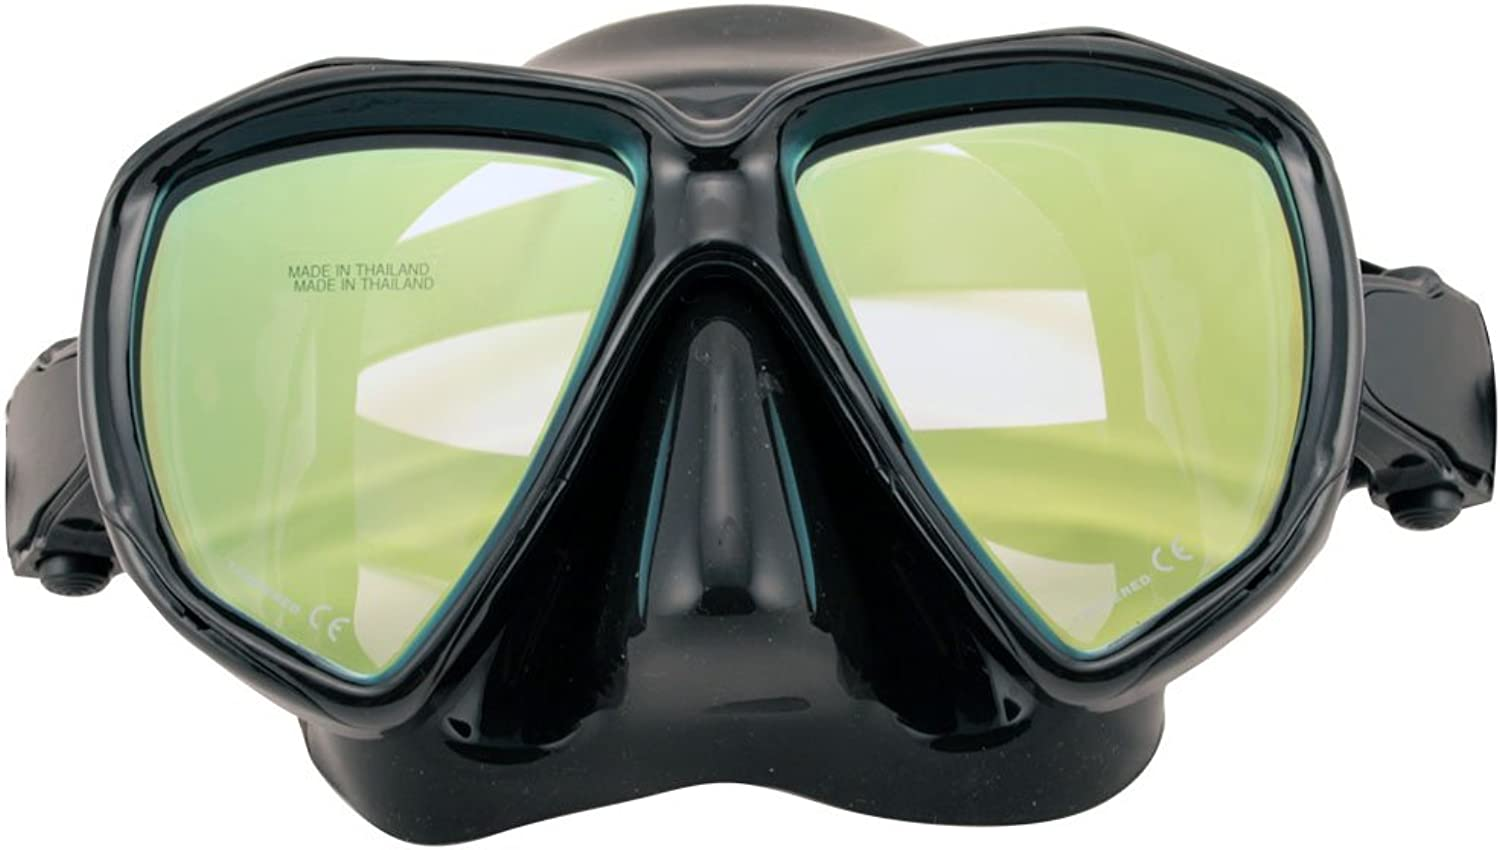 Promate Snorkeling Scuba Dive Mask with Correction Lens